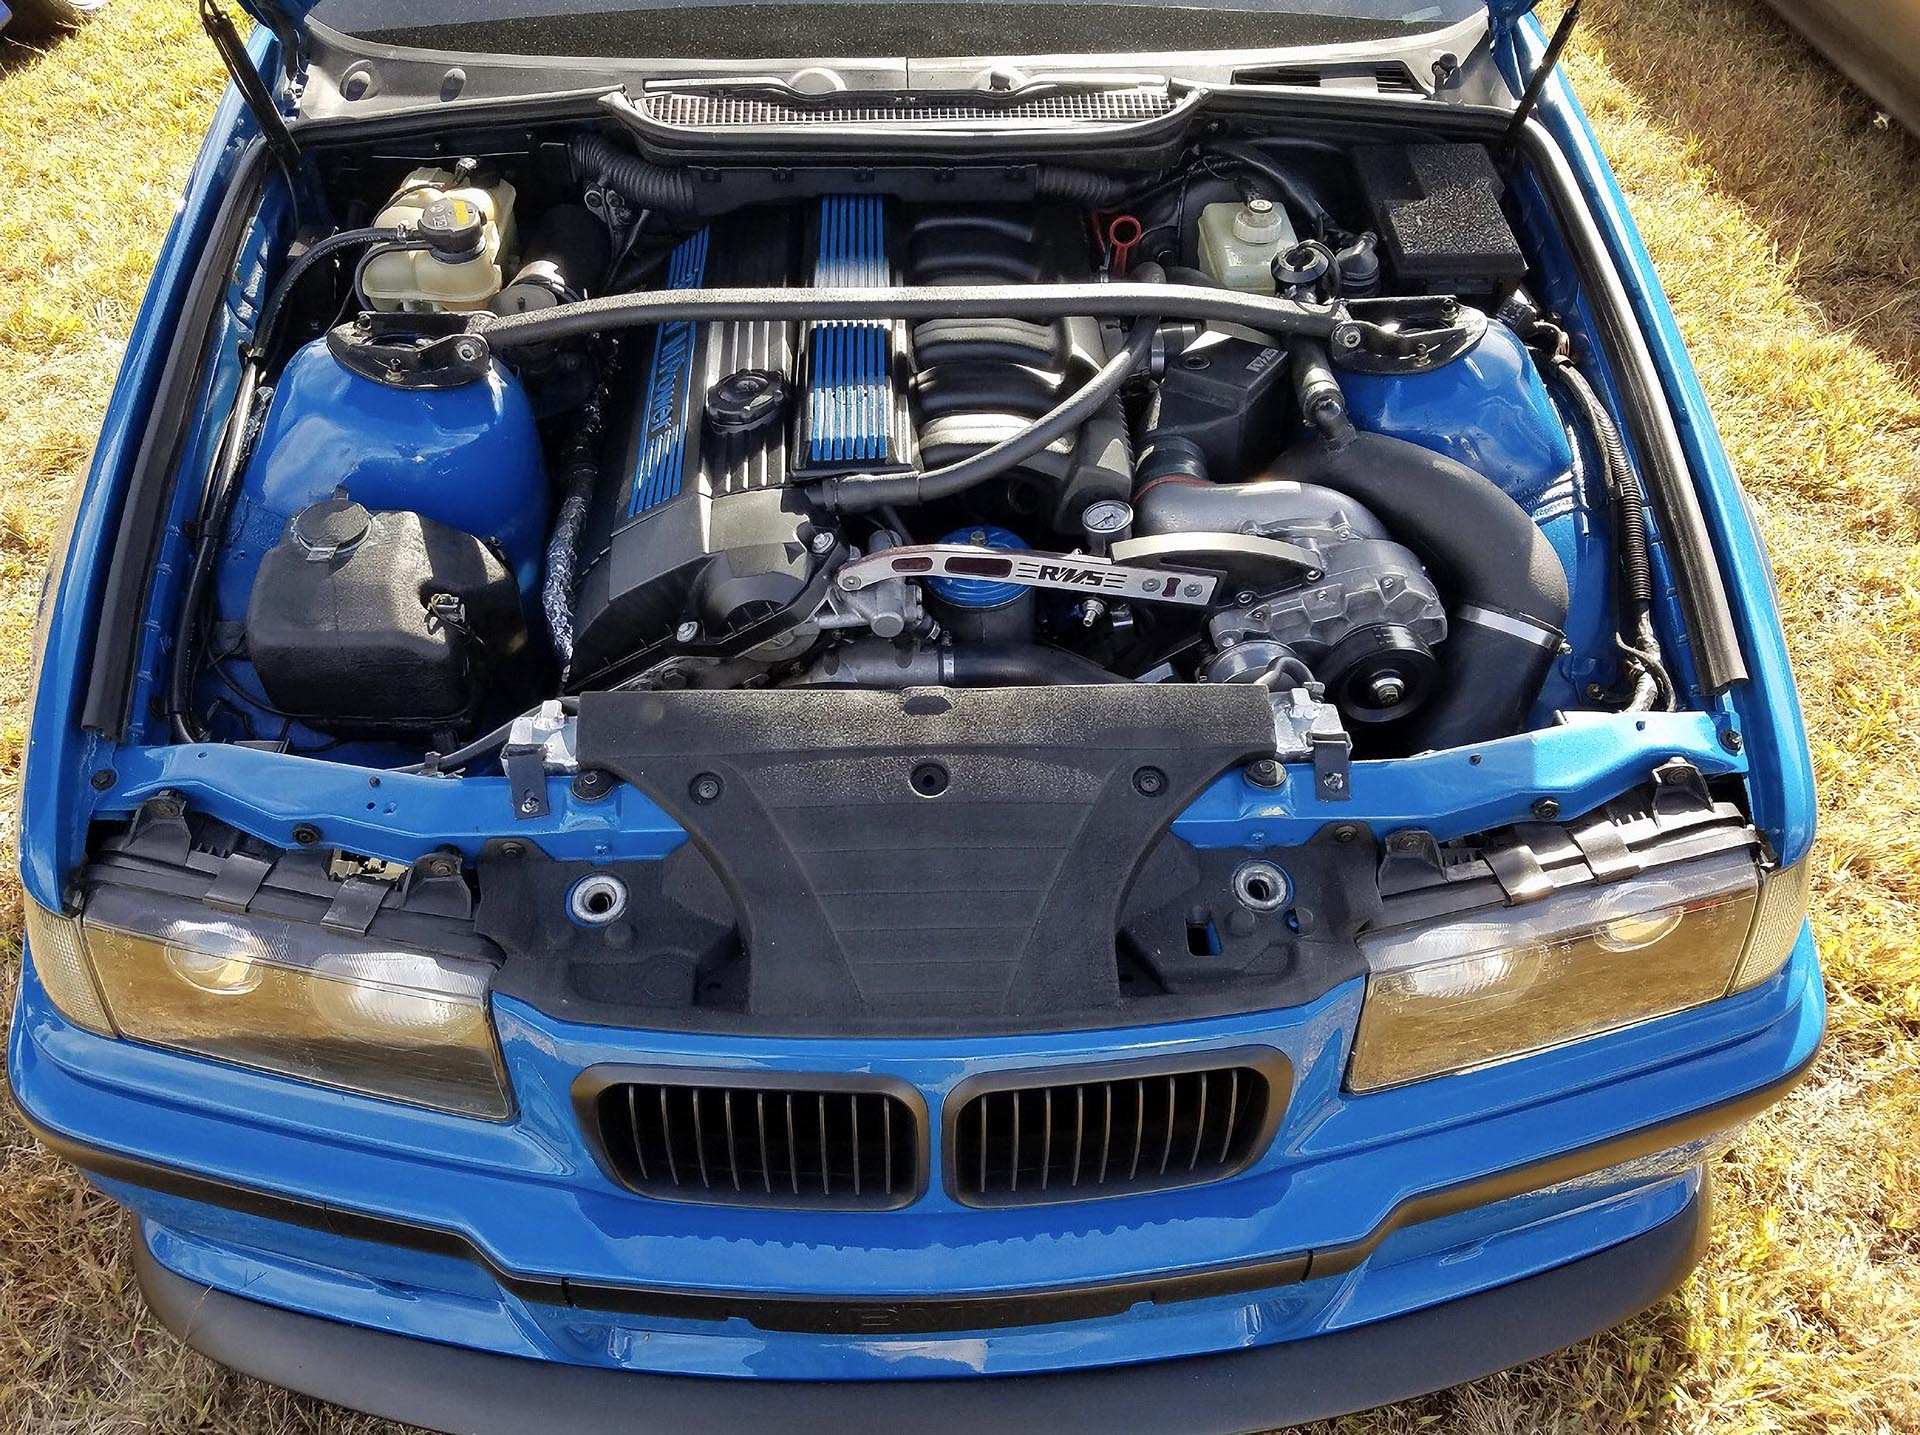 RMS Supercharged S52 E36 M3 clone